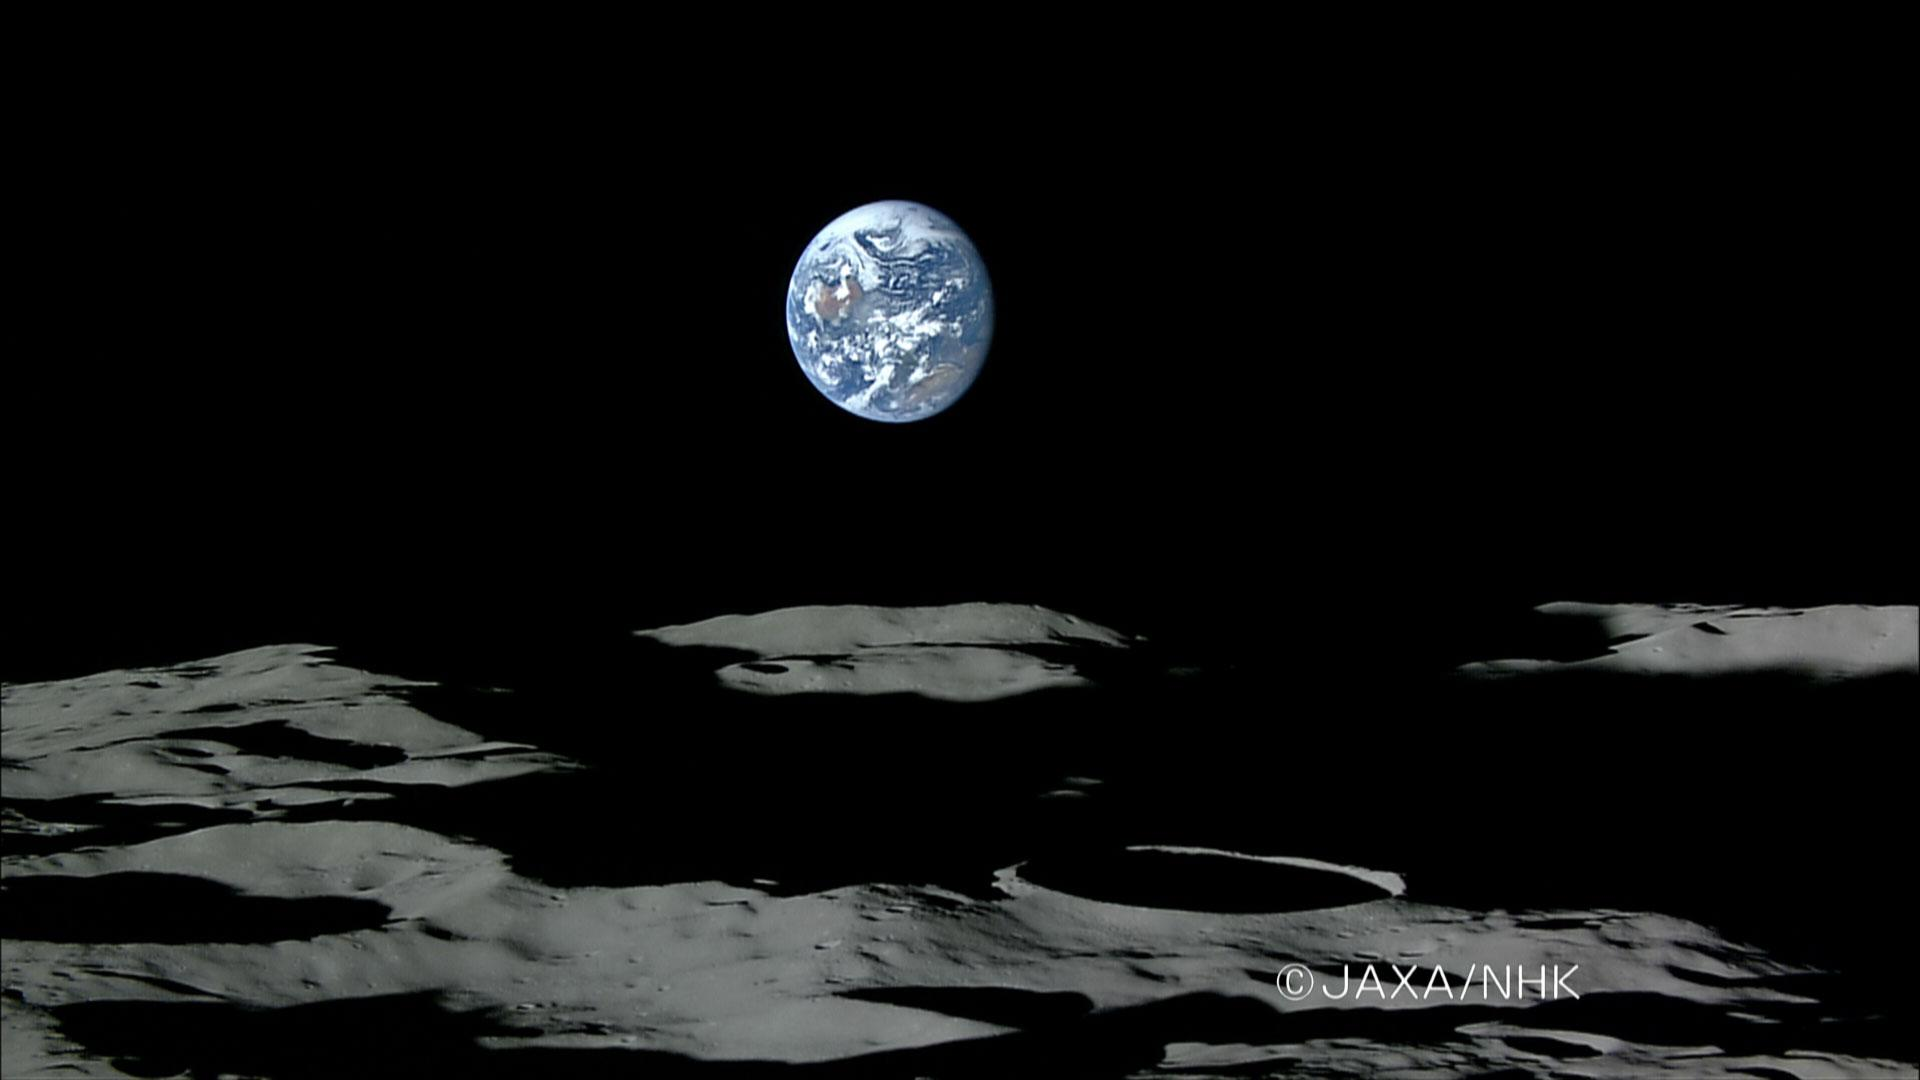 This still image was cut out from a moving image (tele shot) taken by the HDTV onboard the KAGUYA at 12:07 p.m. on November 7, 2007 (Japan Standard Time, JST,) then sent to the JAXA Usuda Deep Space Center.